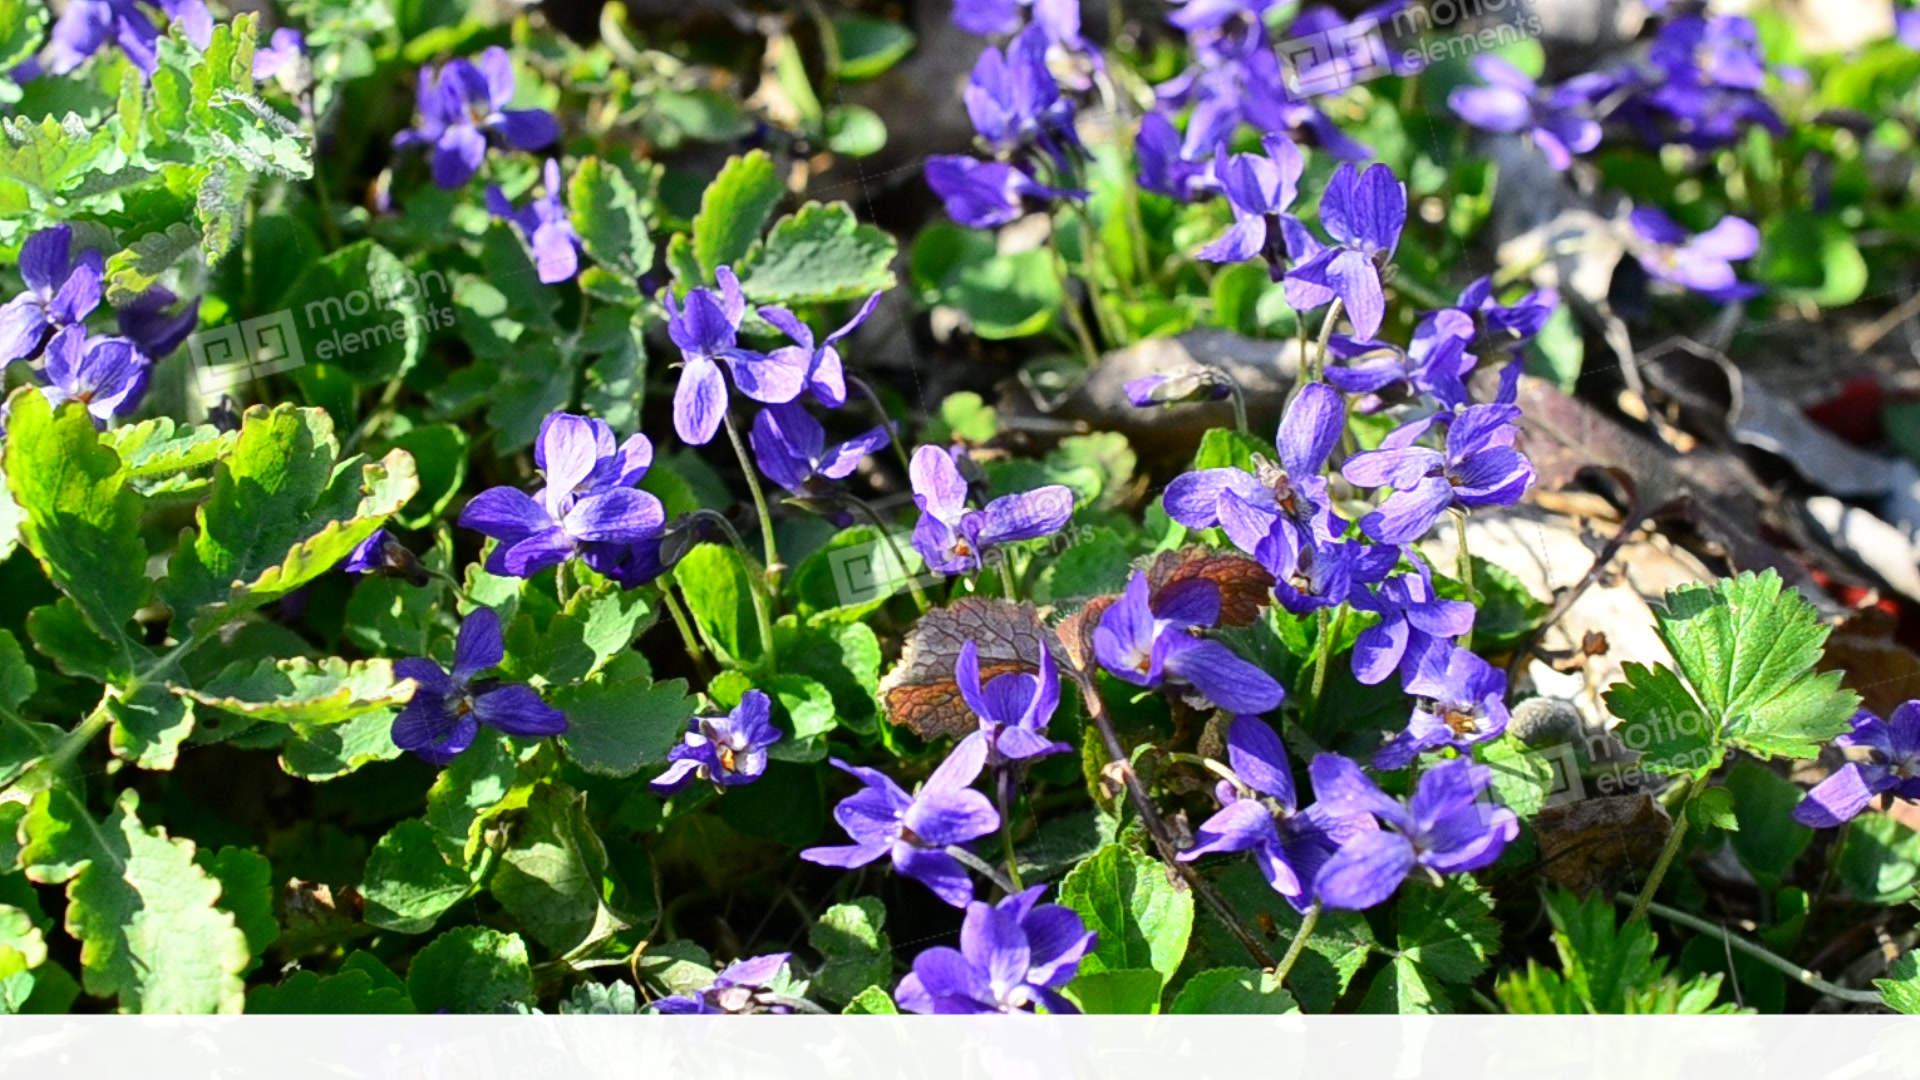 Violet Flowers With Bees And Other Insects On Spring Meadow Stock